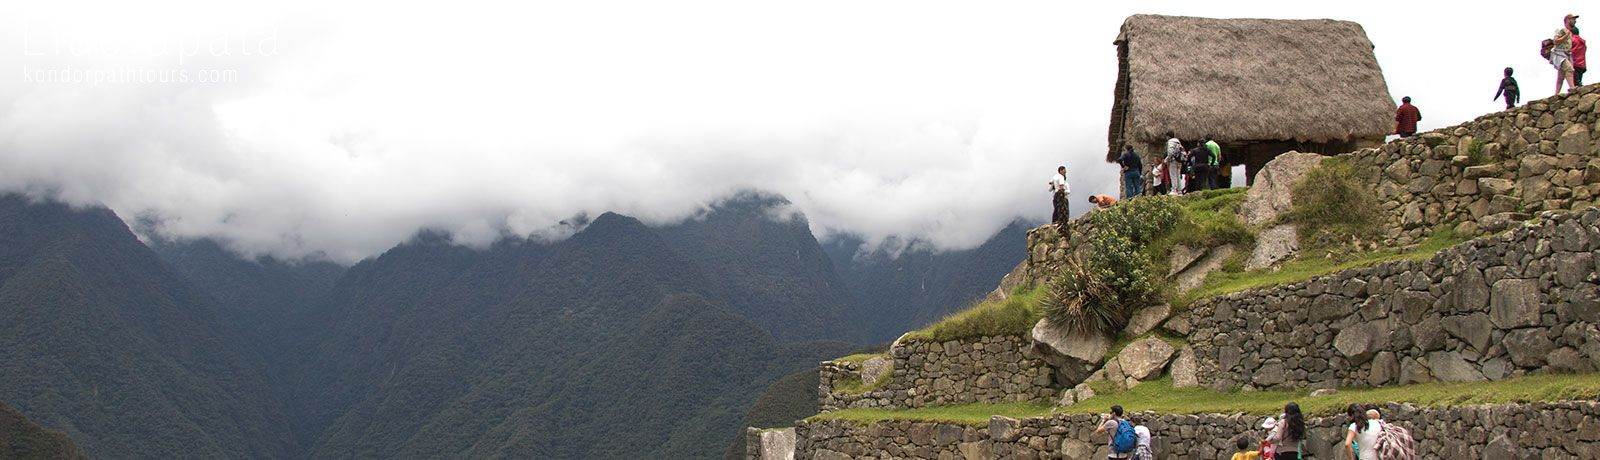 Private Tour Guide Machu Picchu